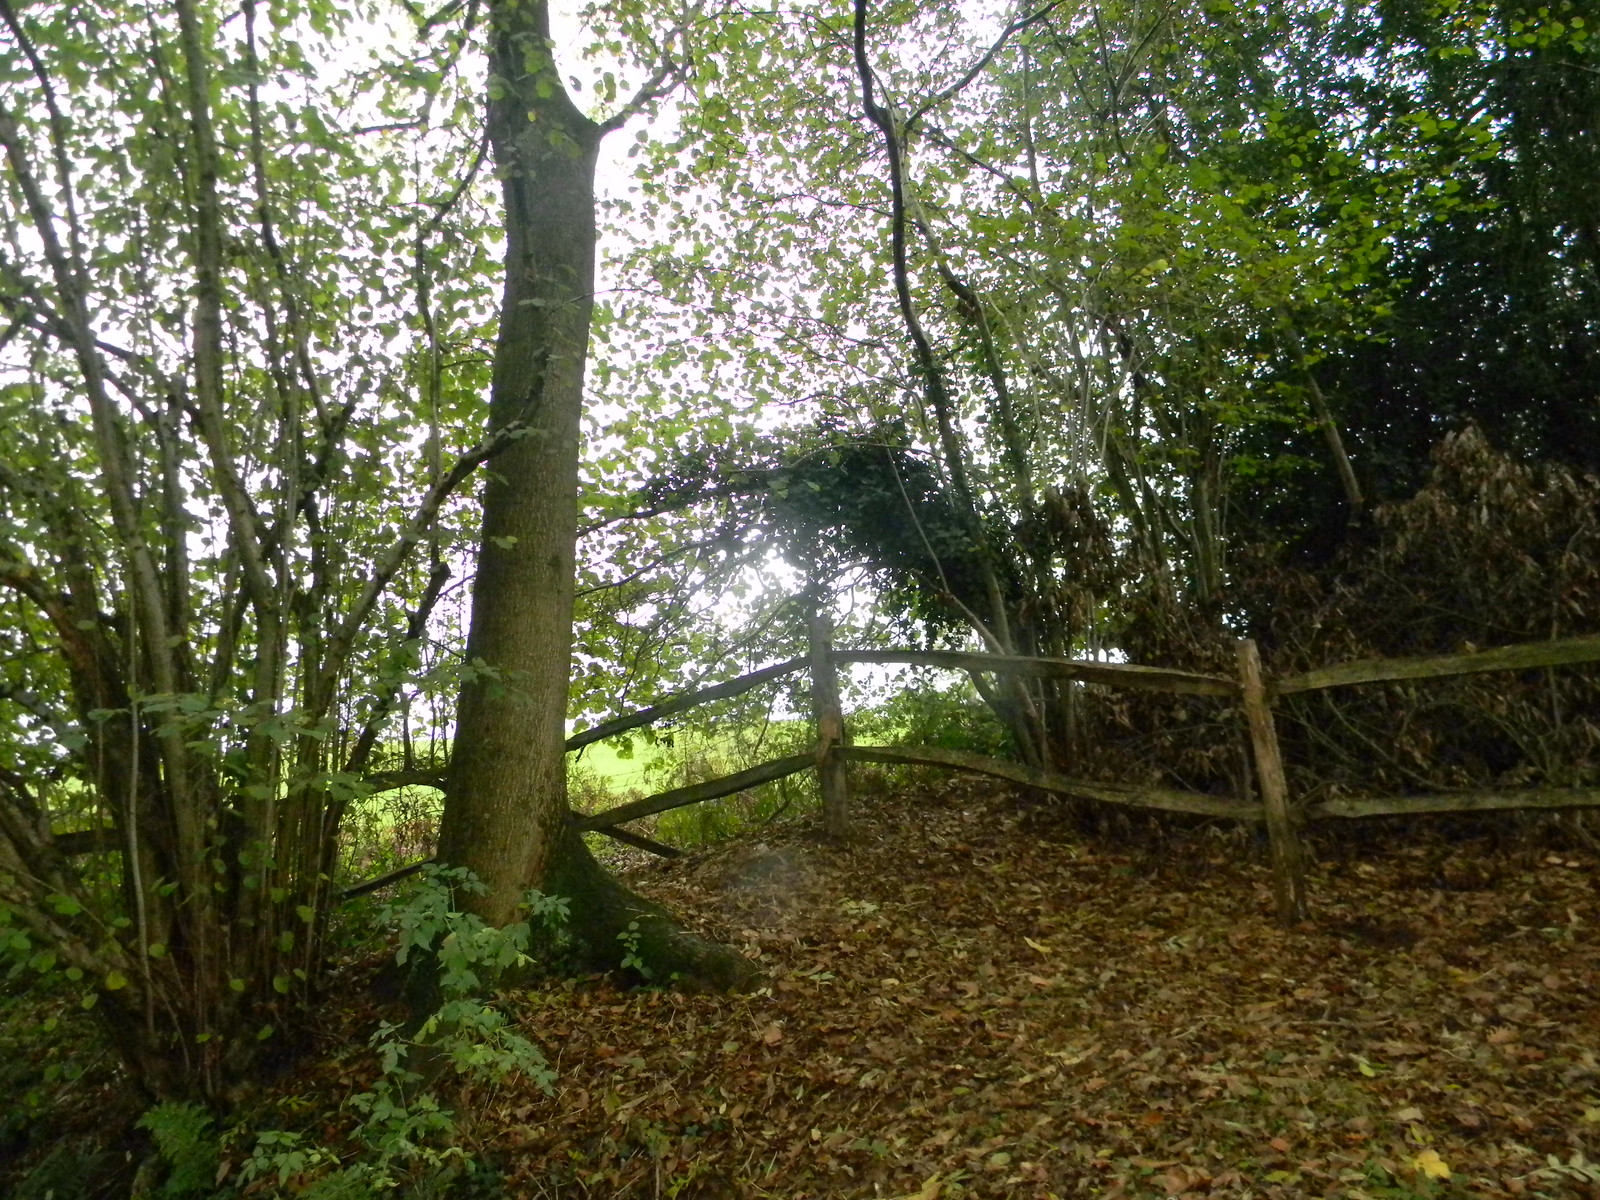 Sinuous fence Milford to Godalming